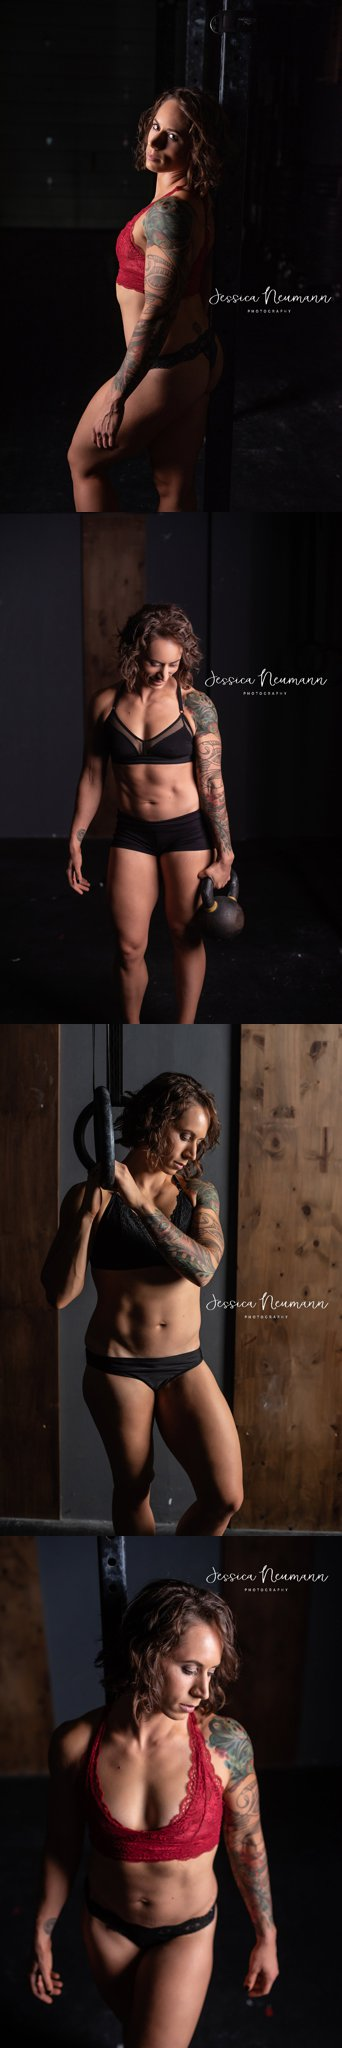 Fitness boudoir photo session in gym in Frederick, MD